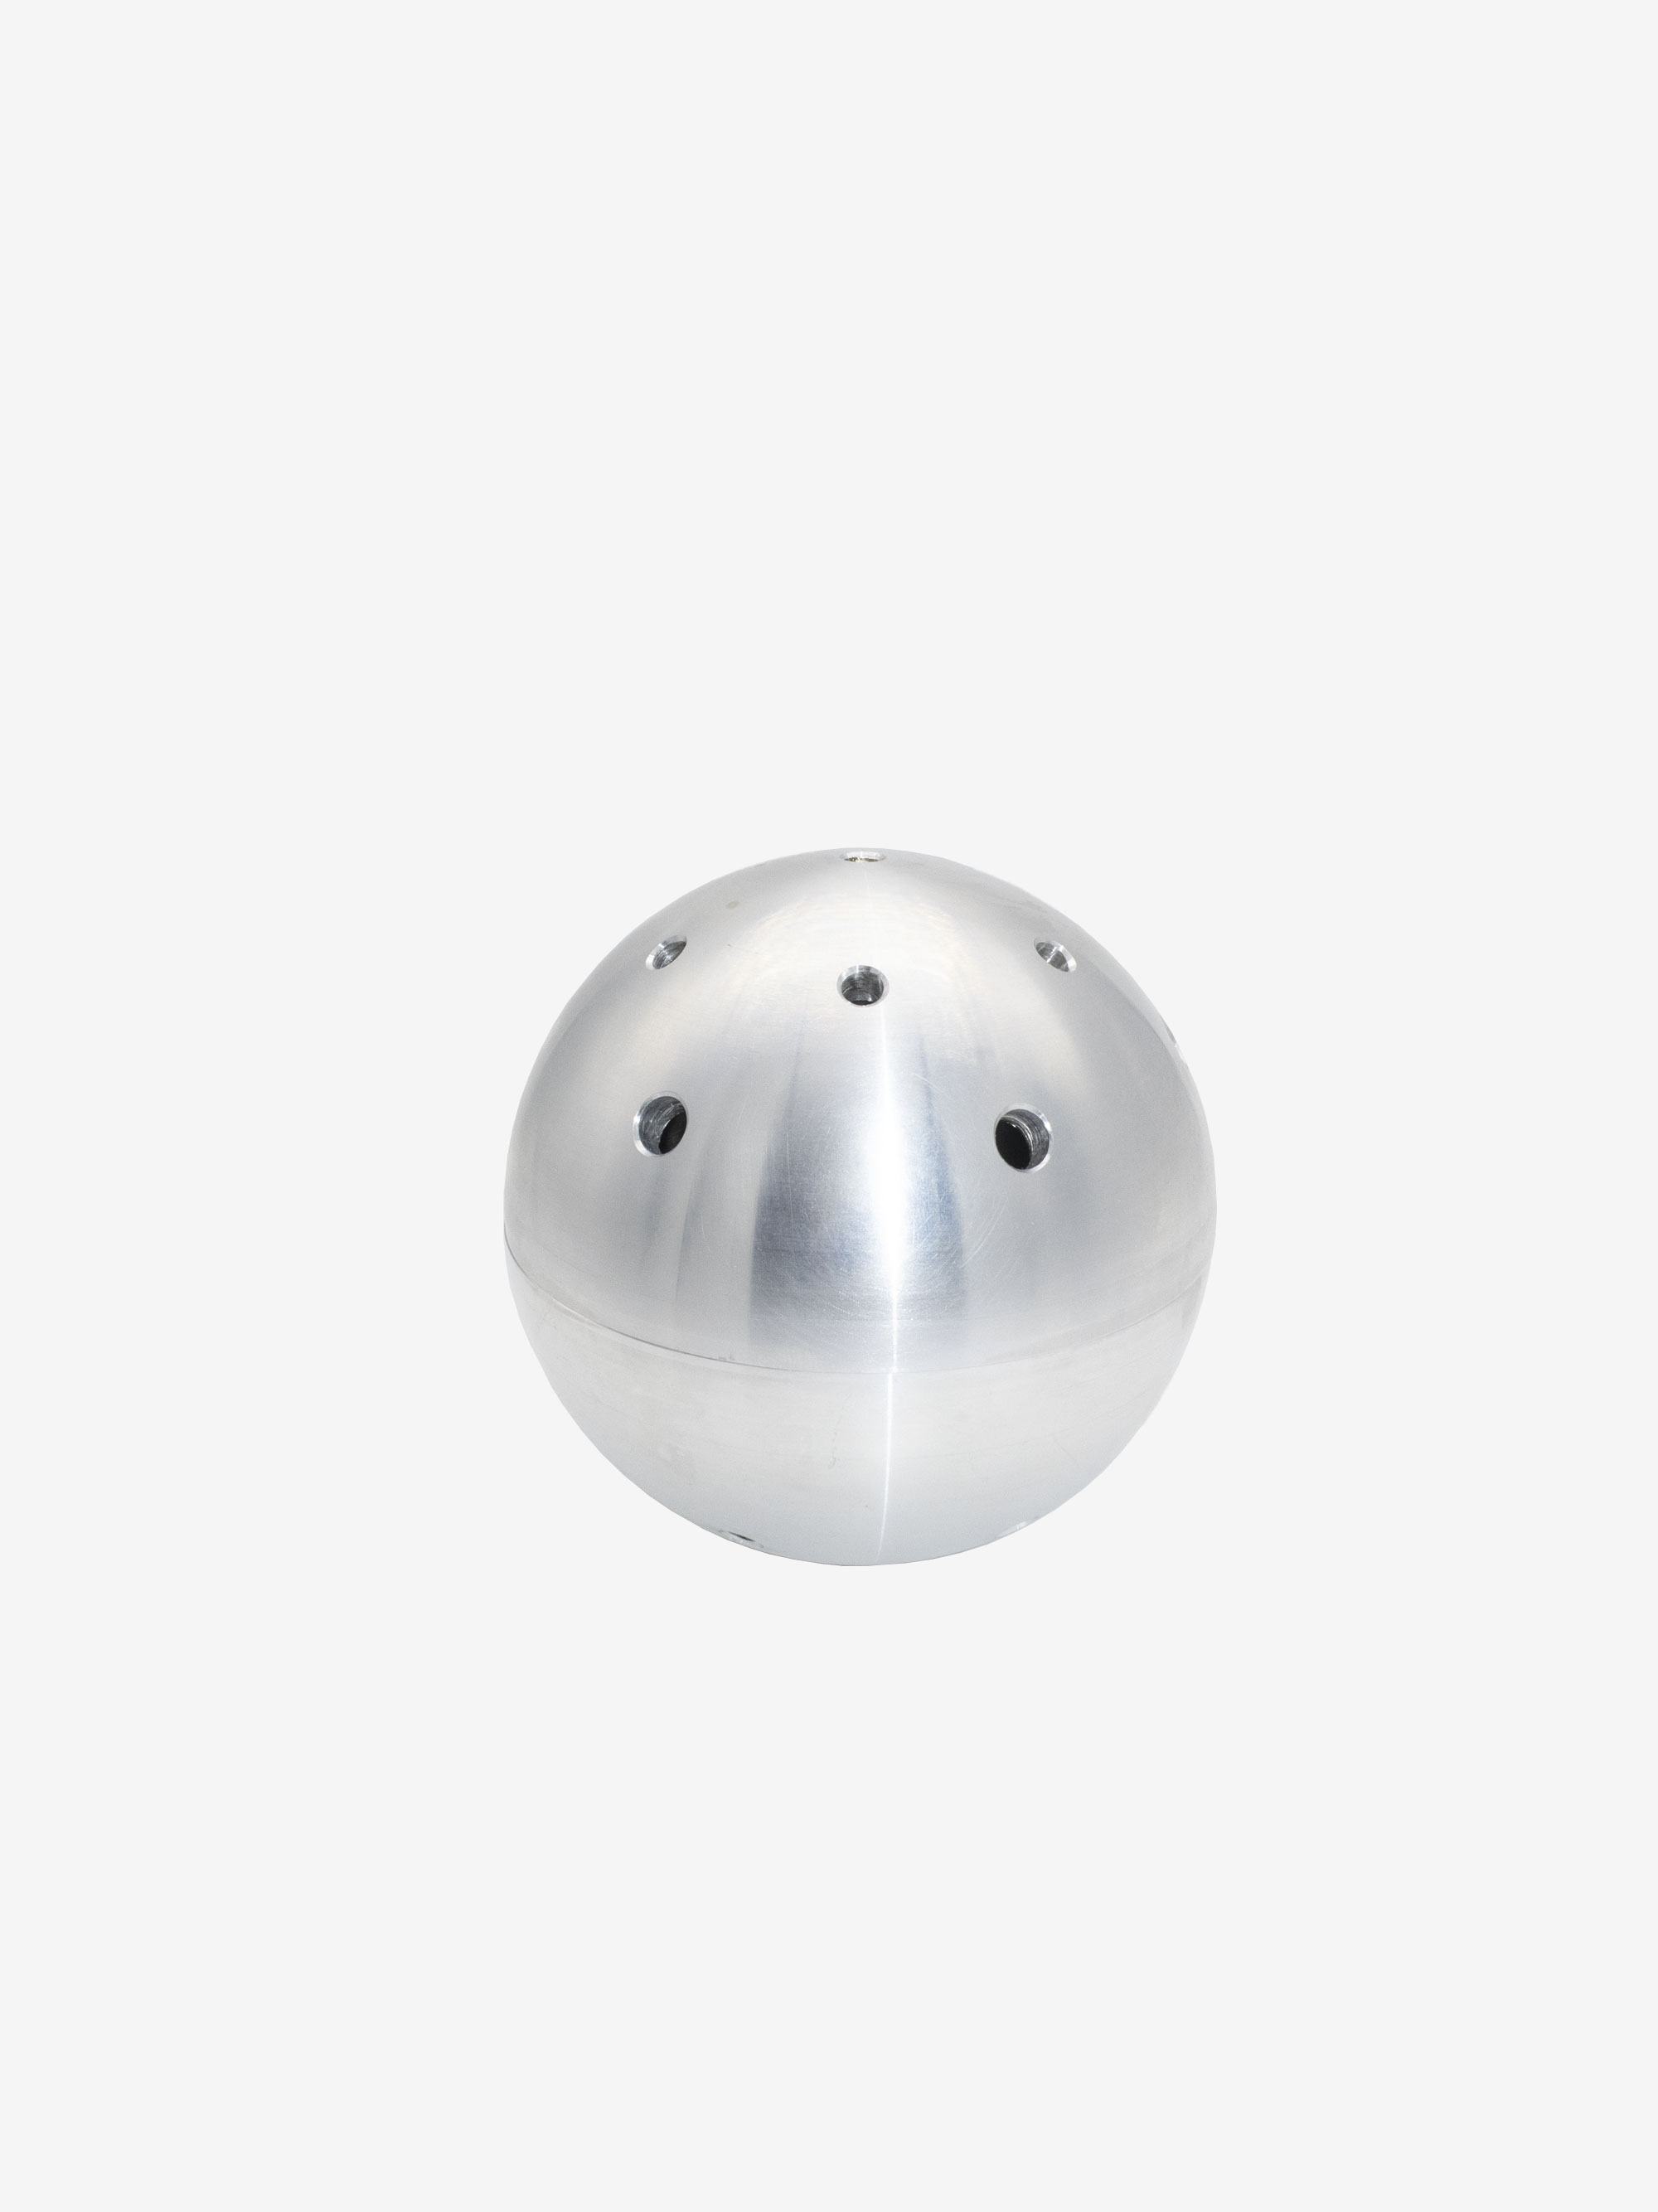 Aluminum Incense Burner